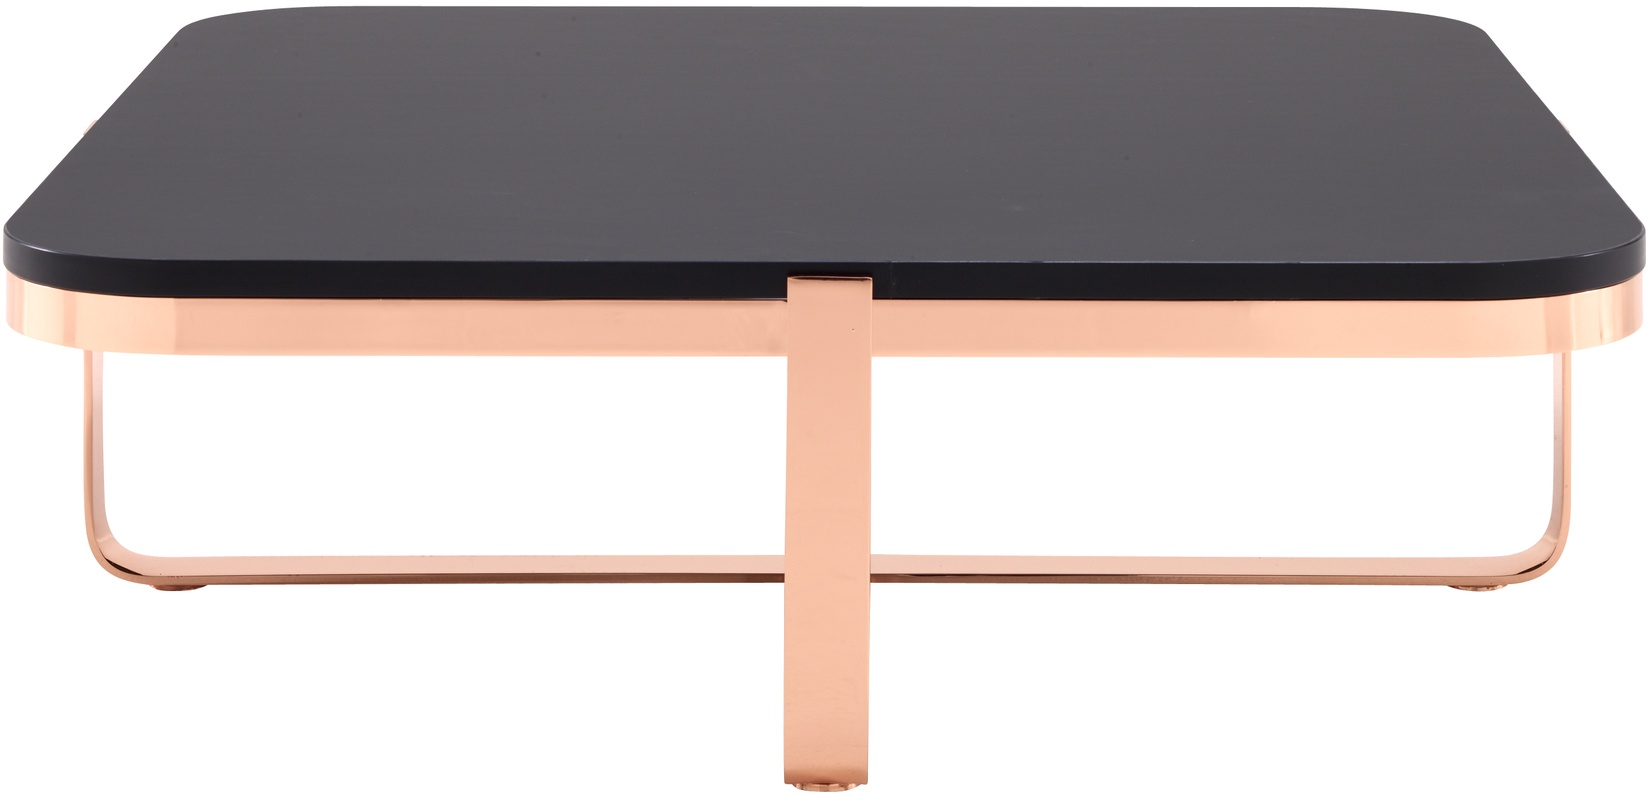 FANCY CHIC Occasional Tables from Designer Frdric Ruyant